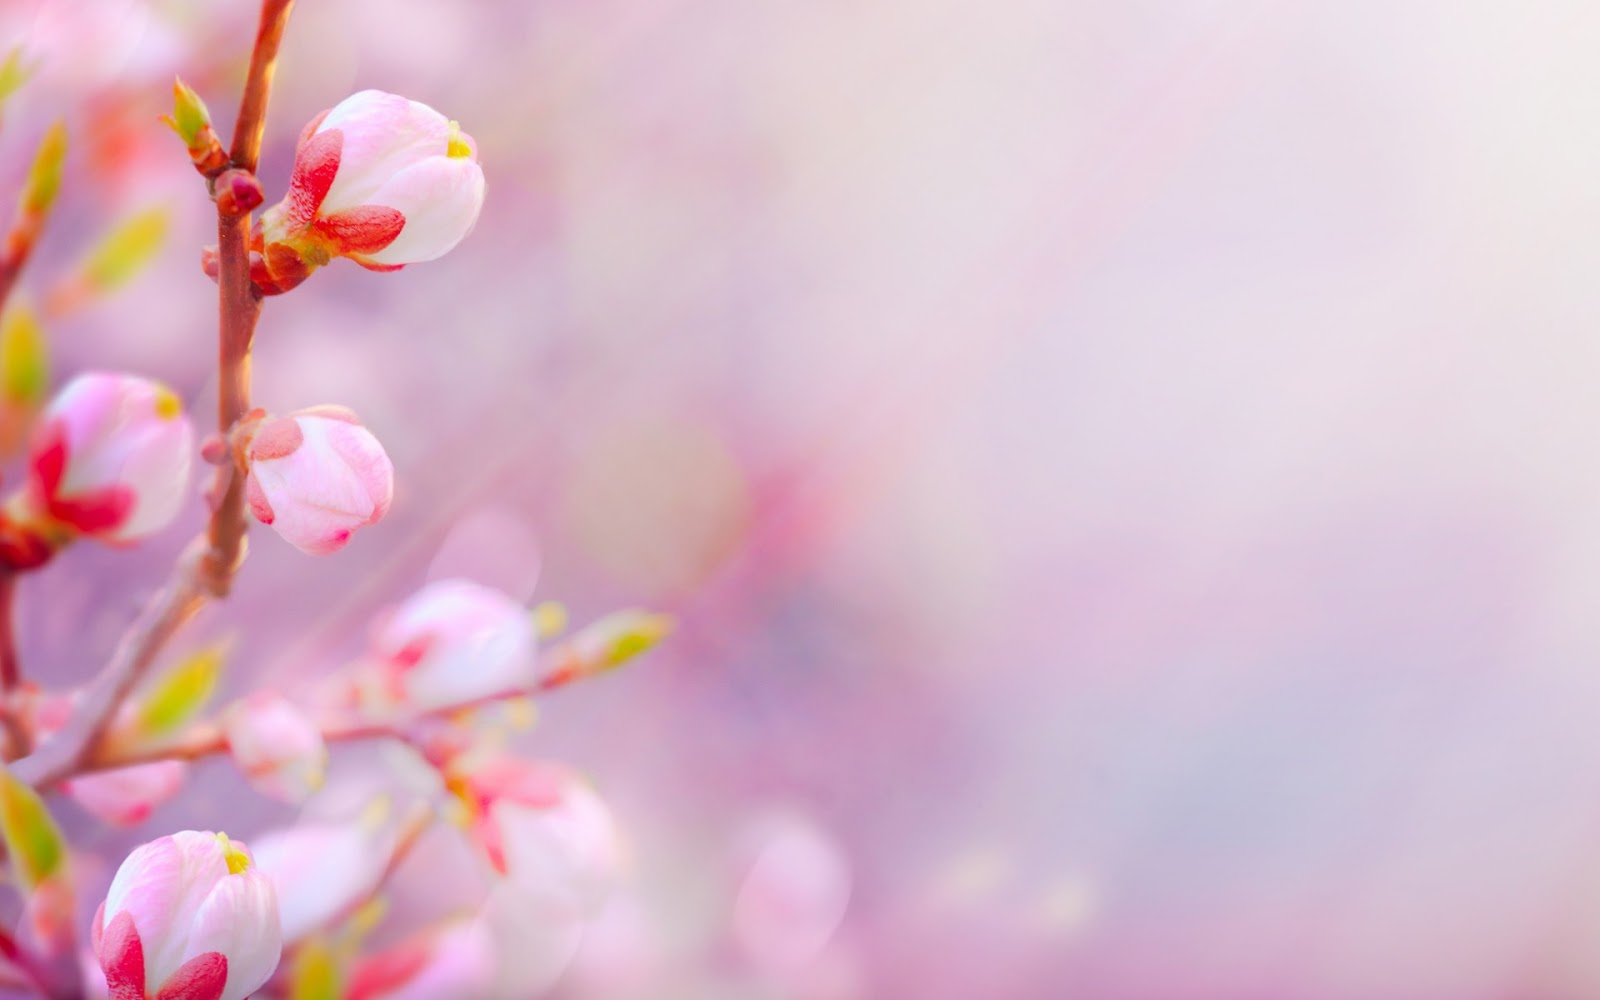 Lovely peach blossom PPT background